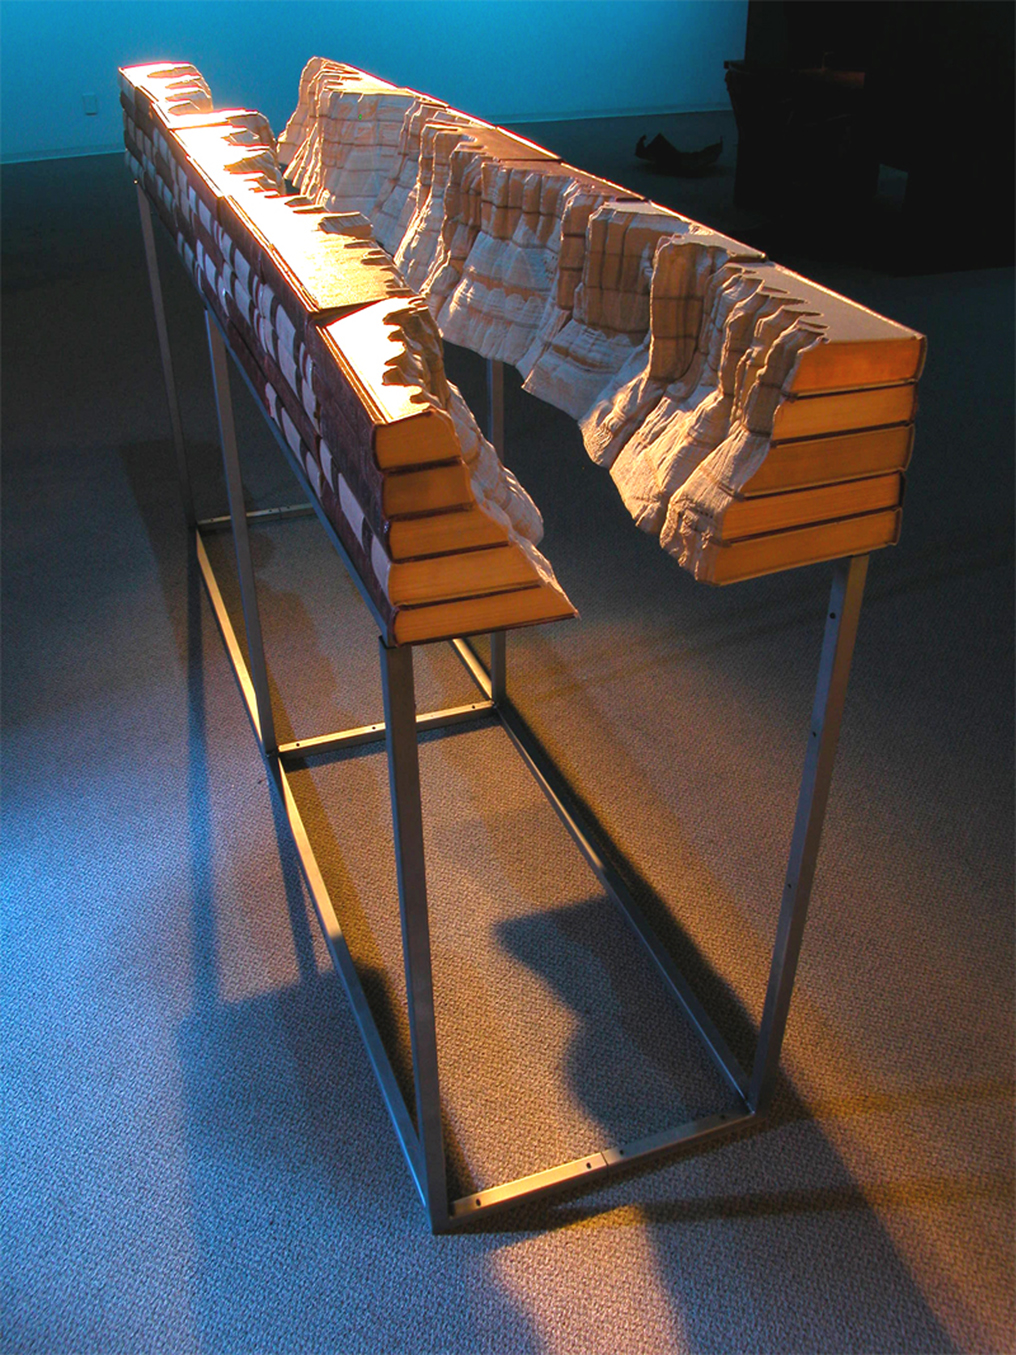 Guy Laramée,  The Grand Library , 2004,altered book, pigment, metal stand, 8 feet x 21 x 44 inches, artwork and image courtesy of the artist and JHB Gallery, New York